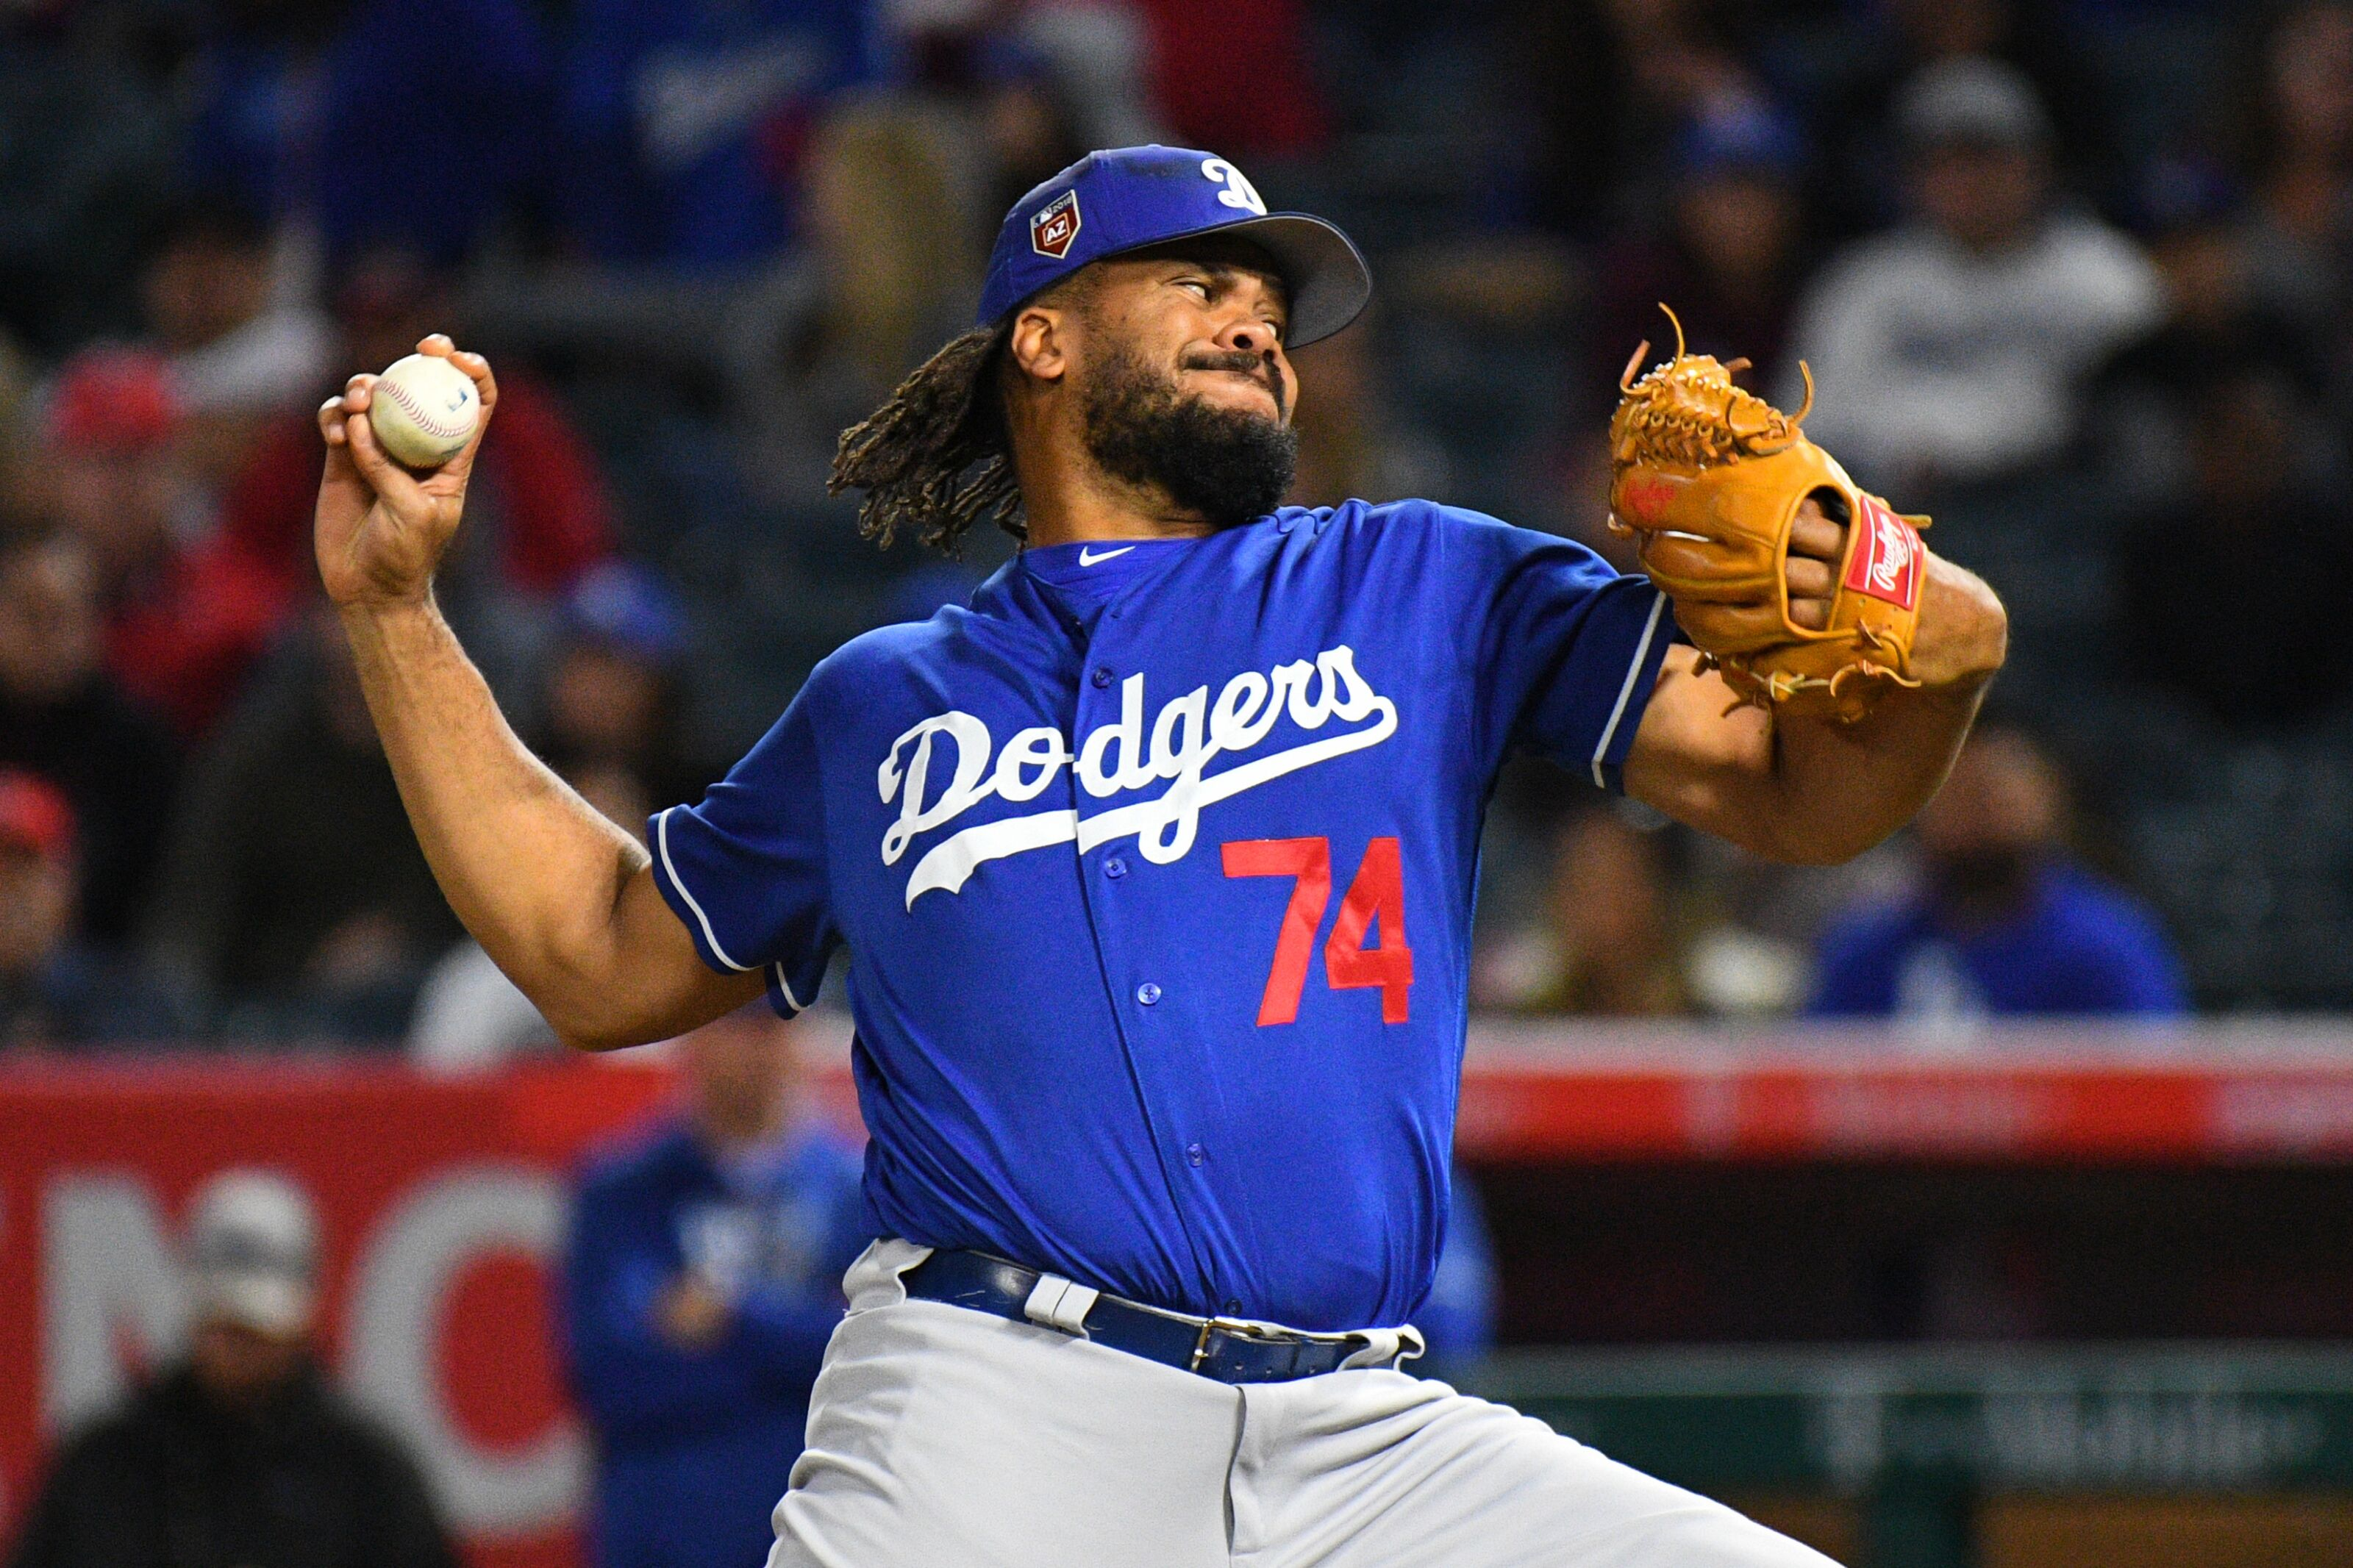 da33b8d5ca6 Dodgers closer Kenley Jansen to pay medical costs for MS patient